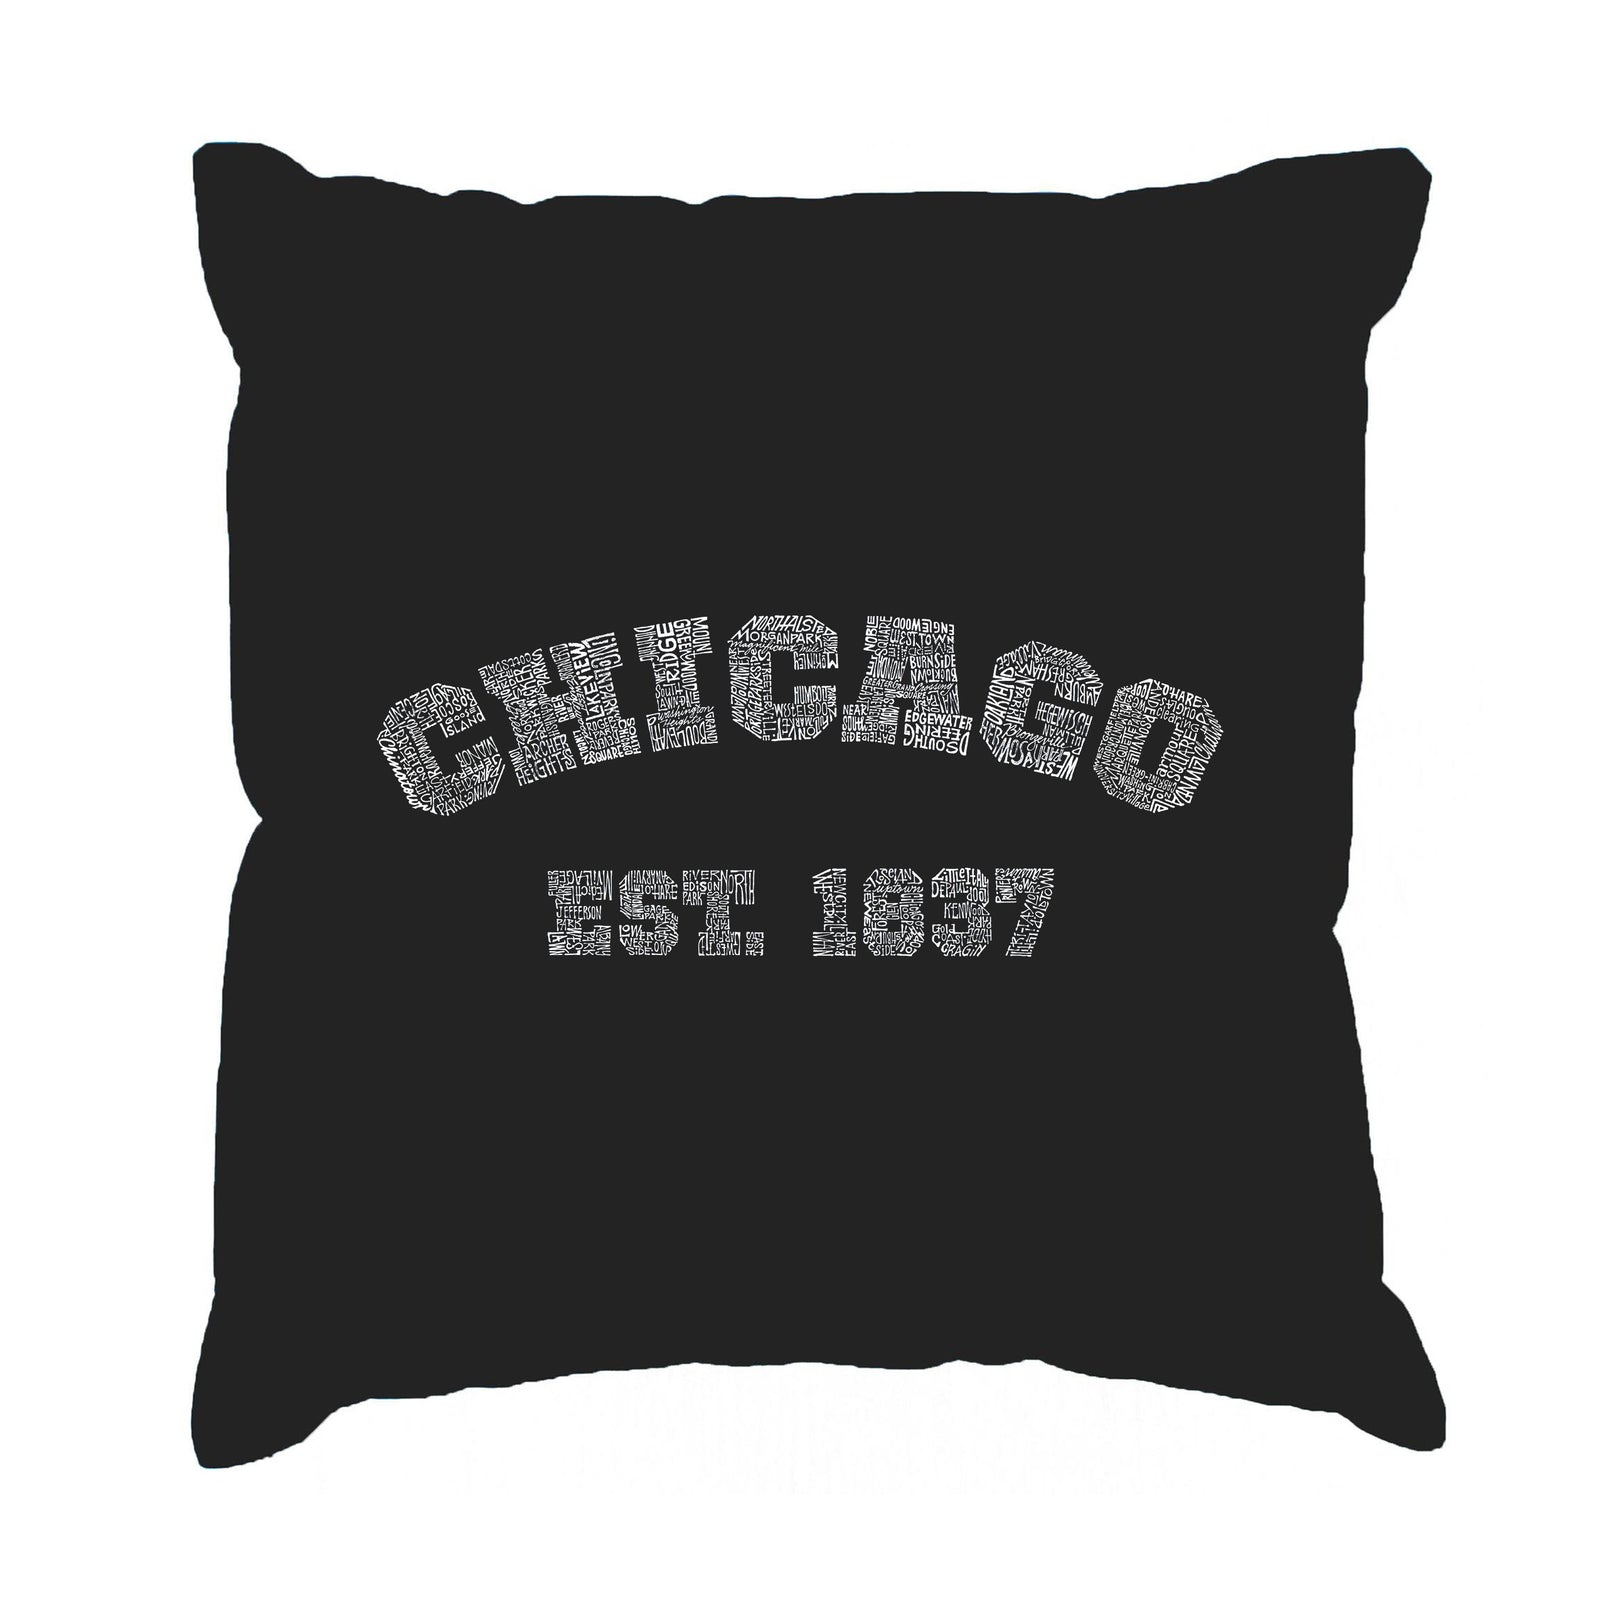 Throw Pillow Cover - Chicago 1837